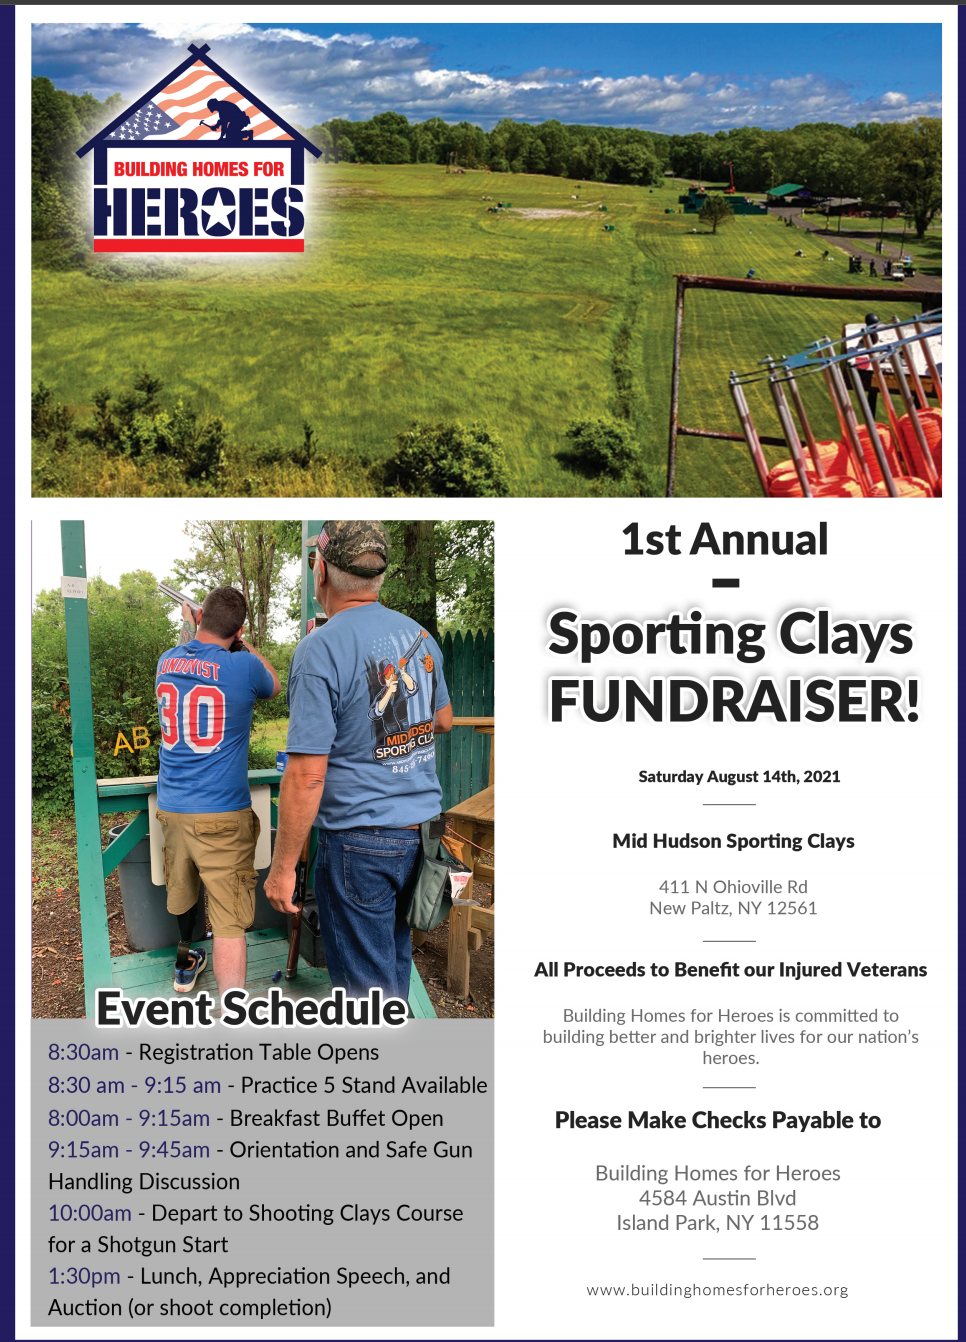 1st Annual Shooting Clays Fundraiser! @ Mid Hudson Sporting Clays